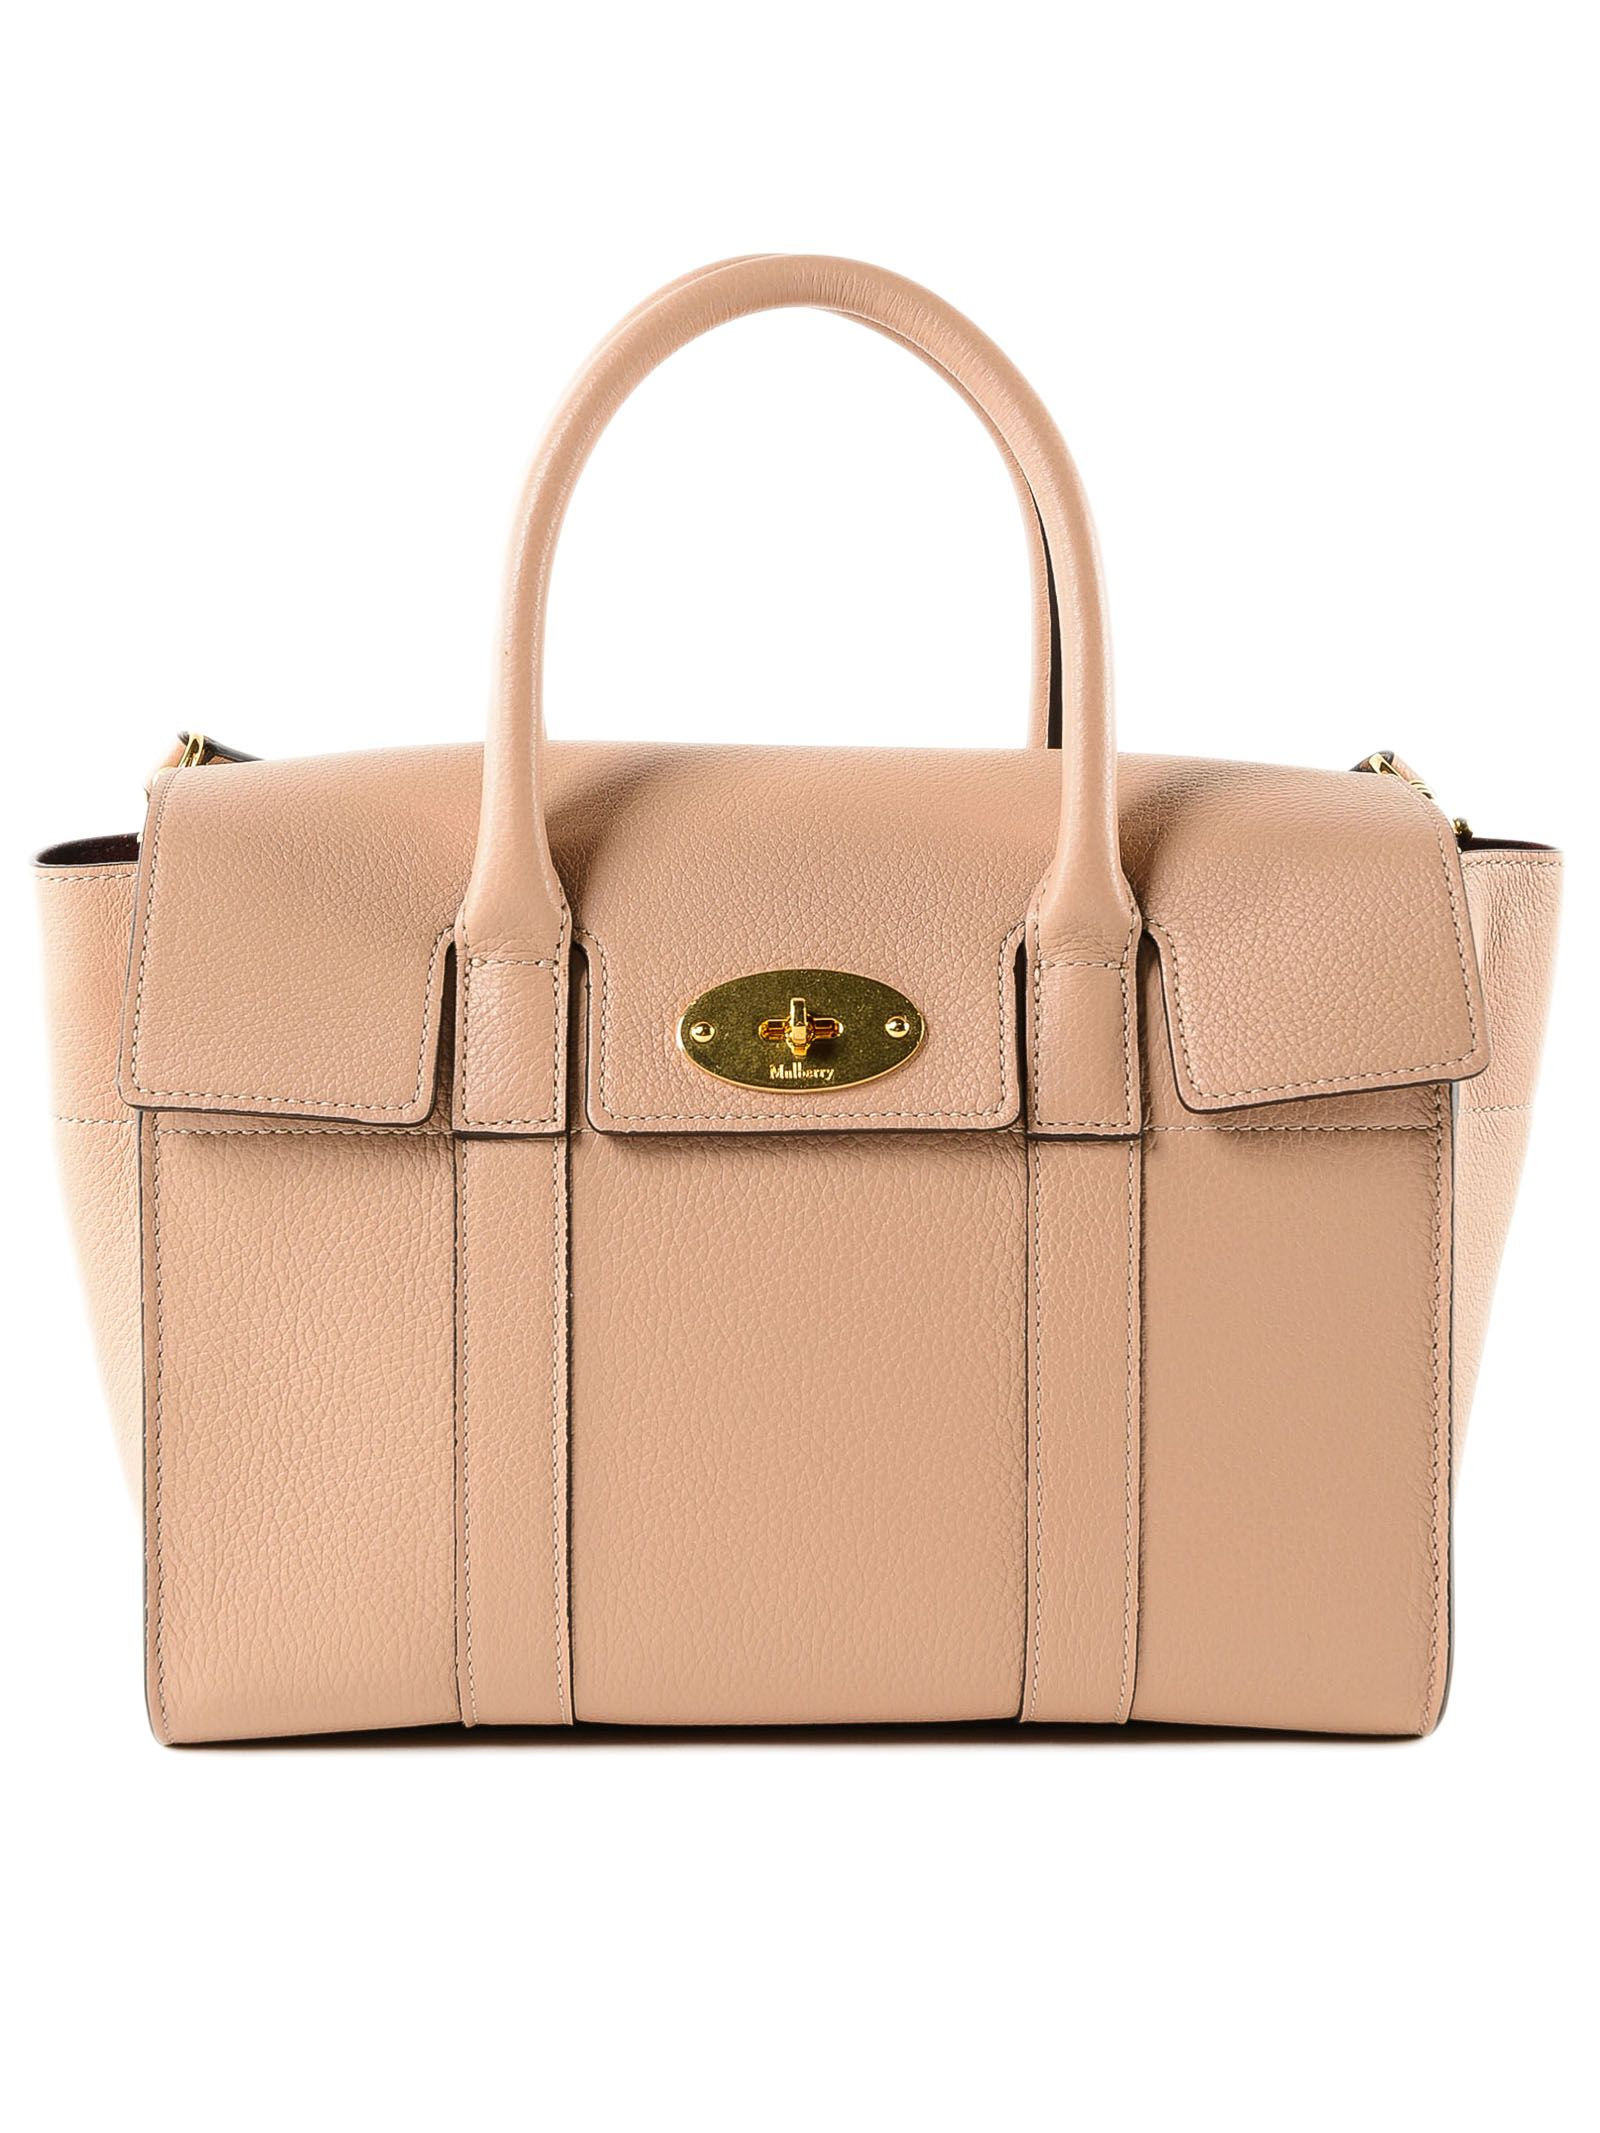 03eb5cae8d0 Mulberry Mulberry Small Bayswater Tote - Rosewater - 10782812